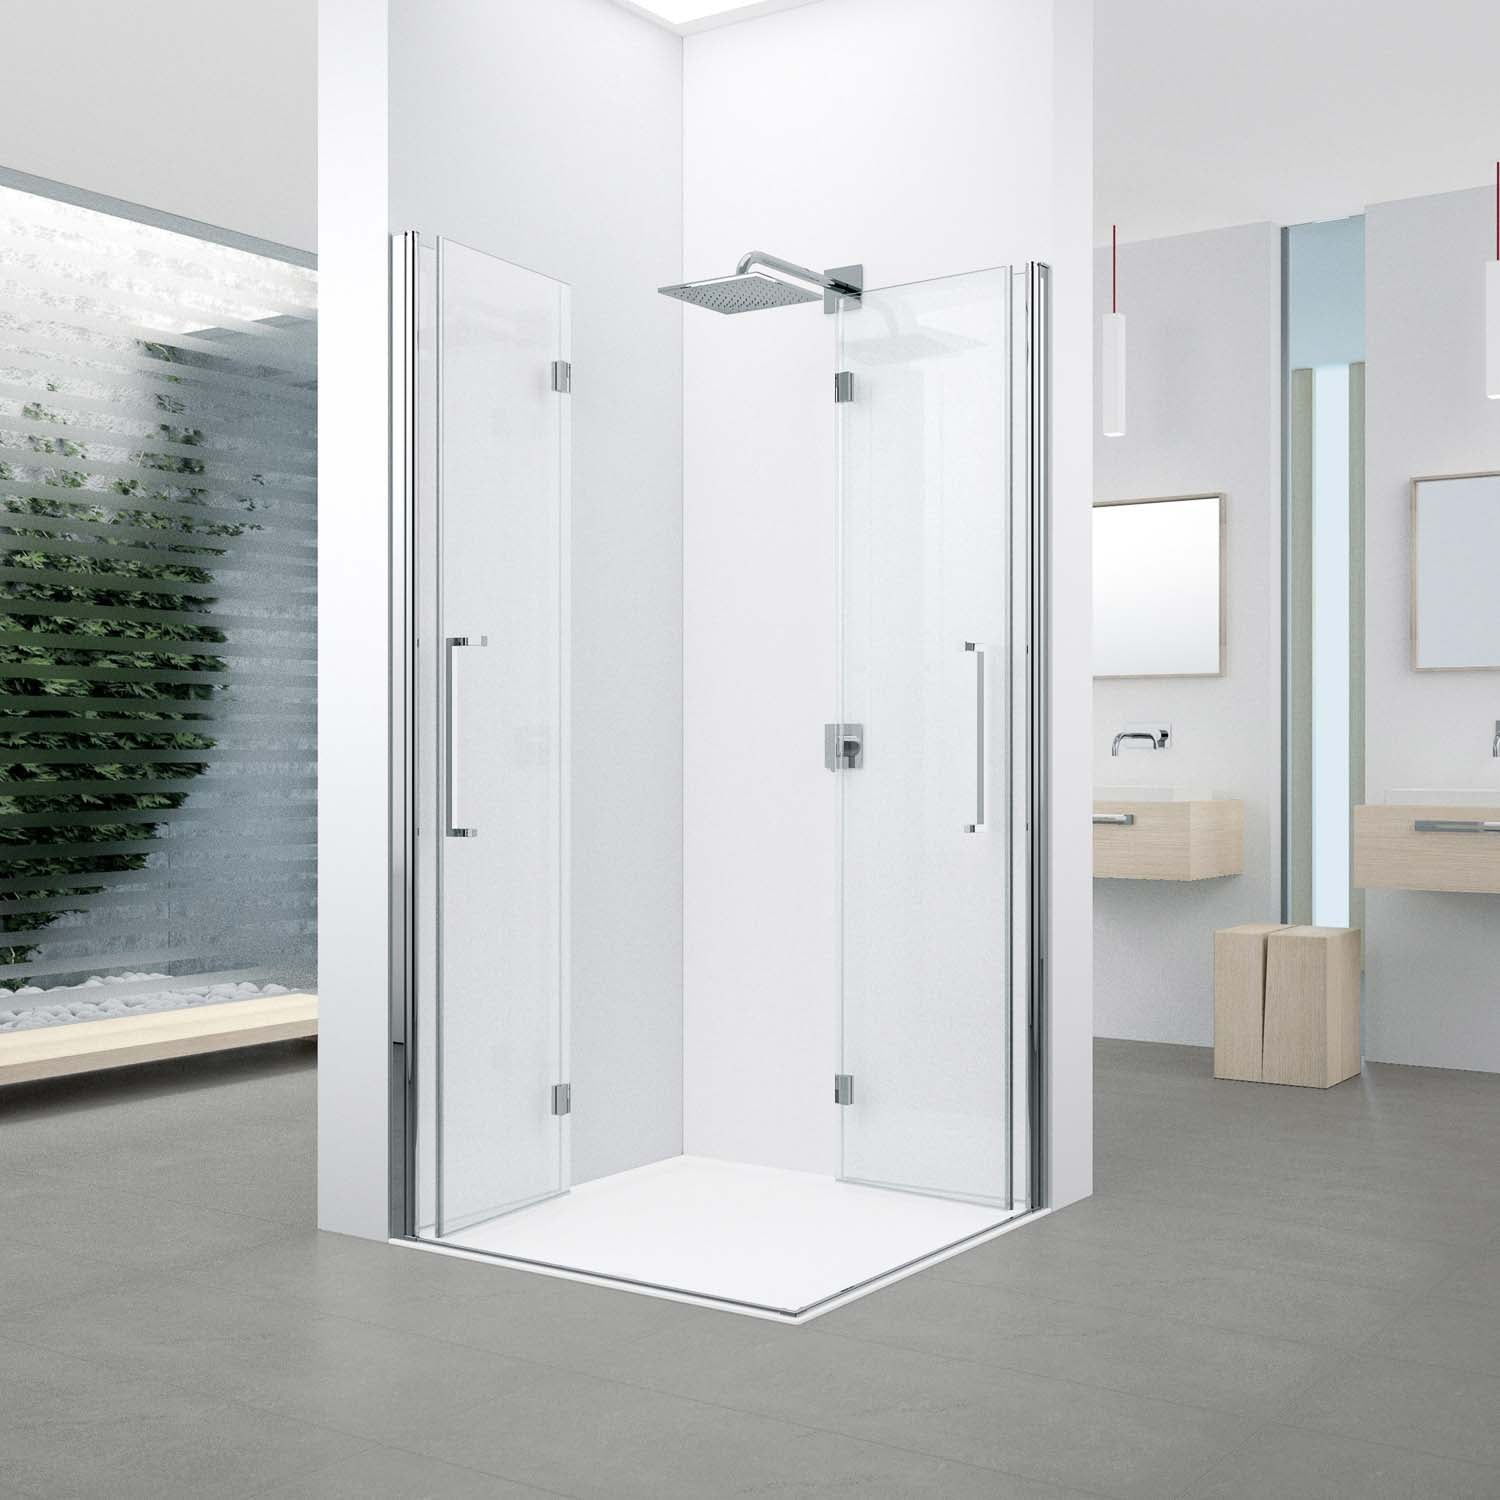 690-710mm Bliss Bi-folding Screen Frosted Glass with a chrome finish lifestyle image